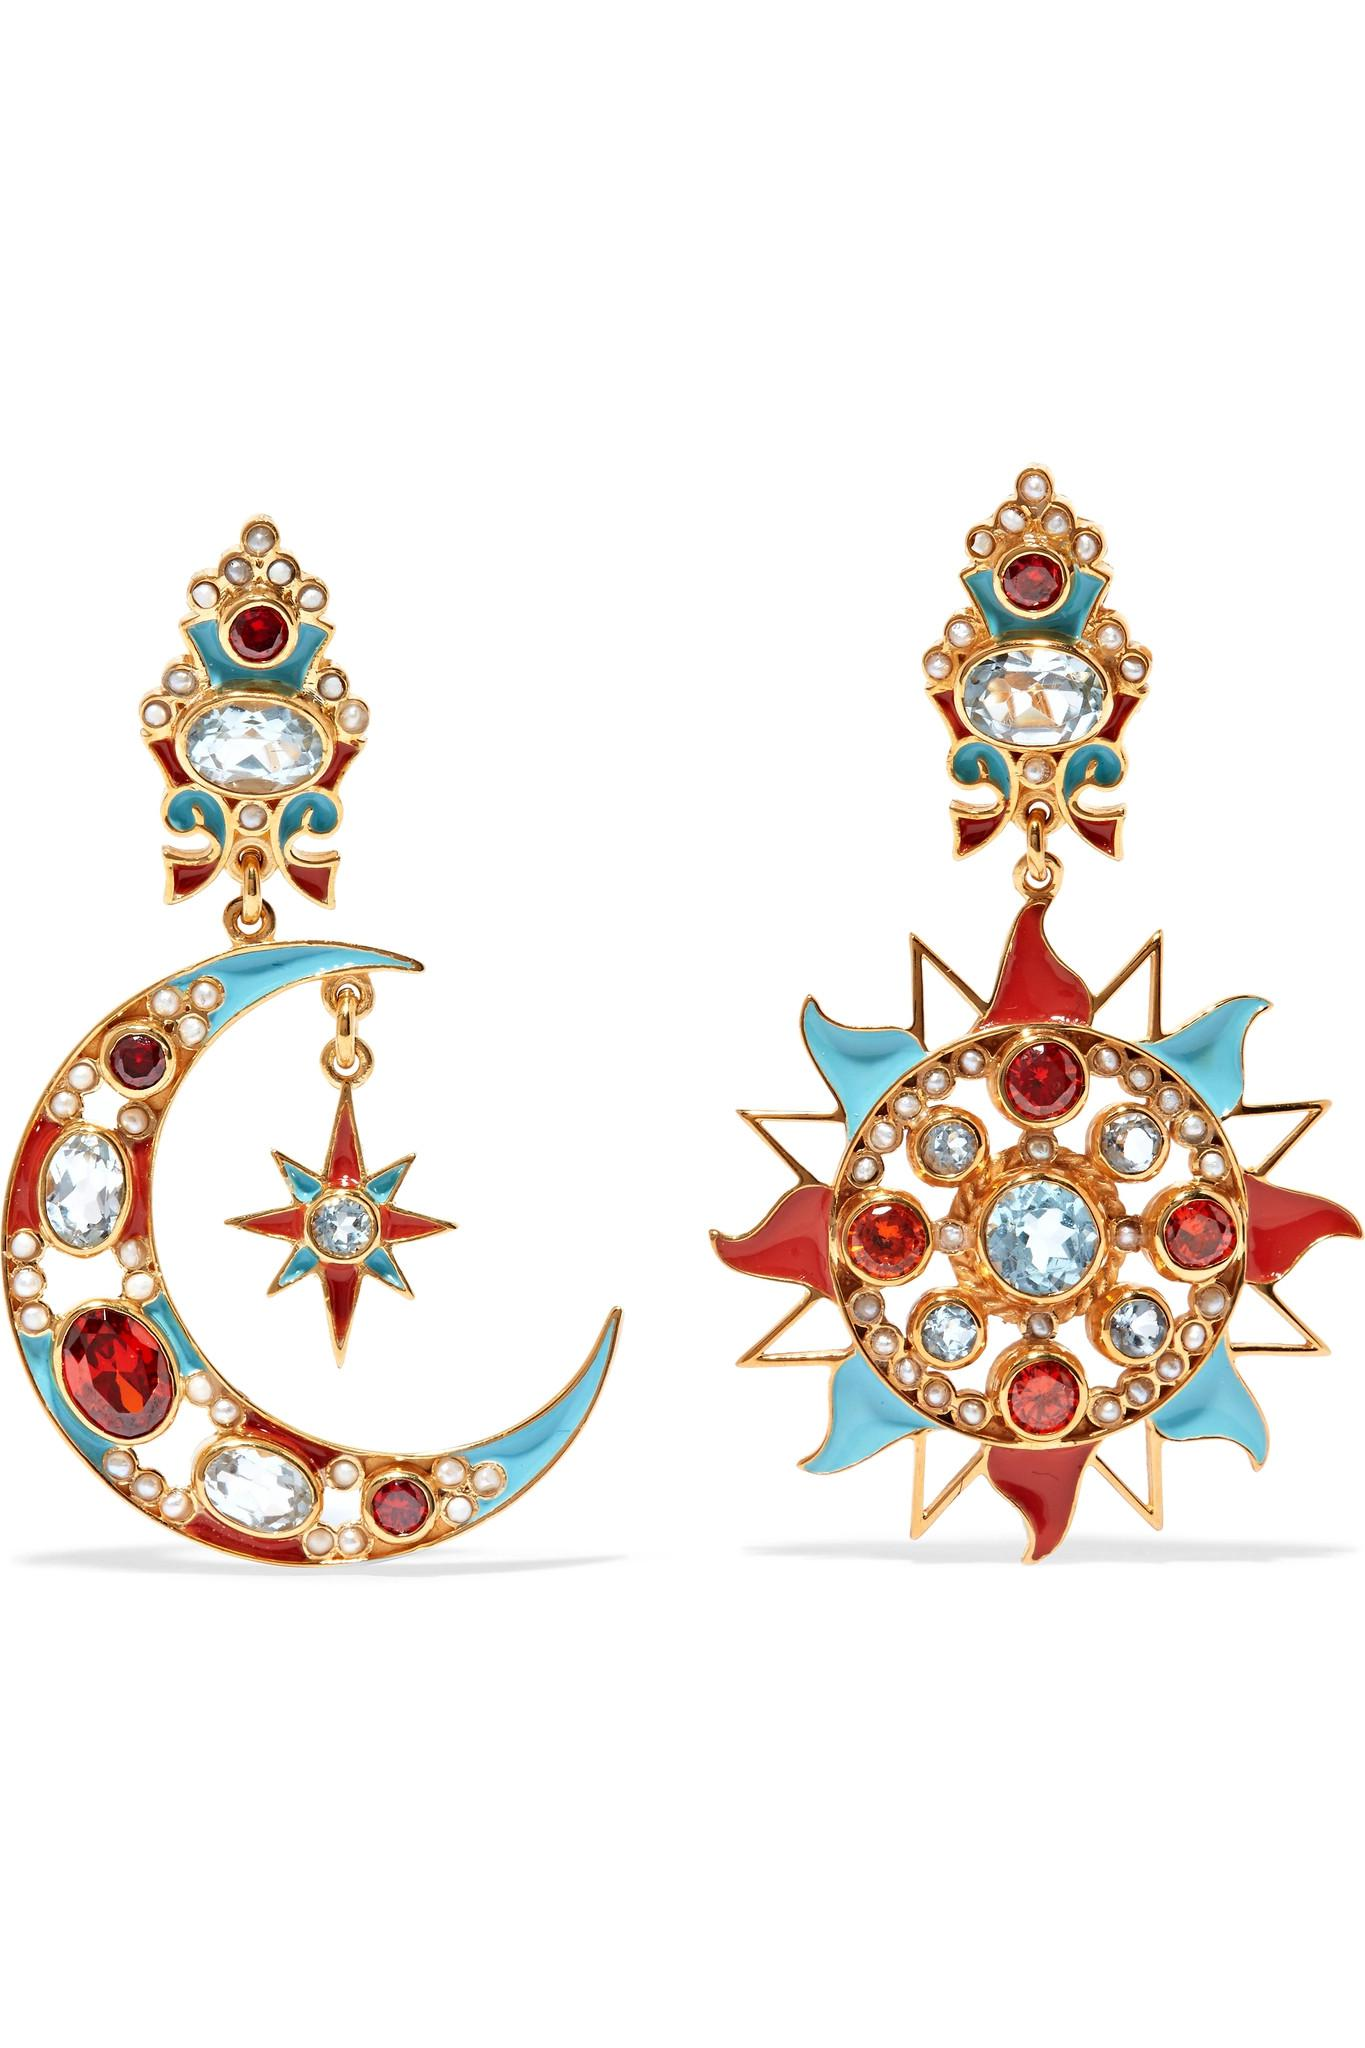 Percossi Papi Gold-plated Multi-stone Clip Earrings - Turquoise 5jOv323XA